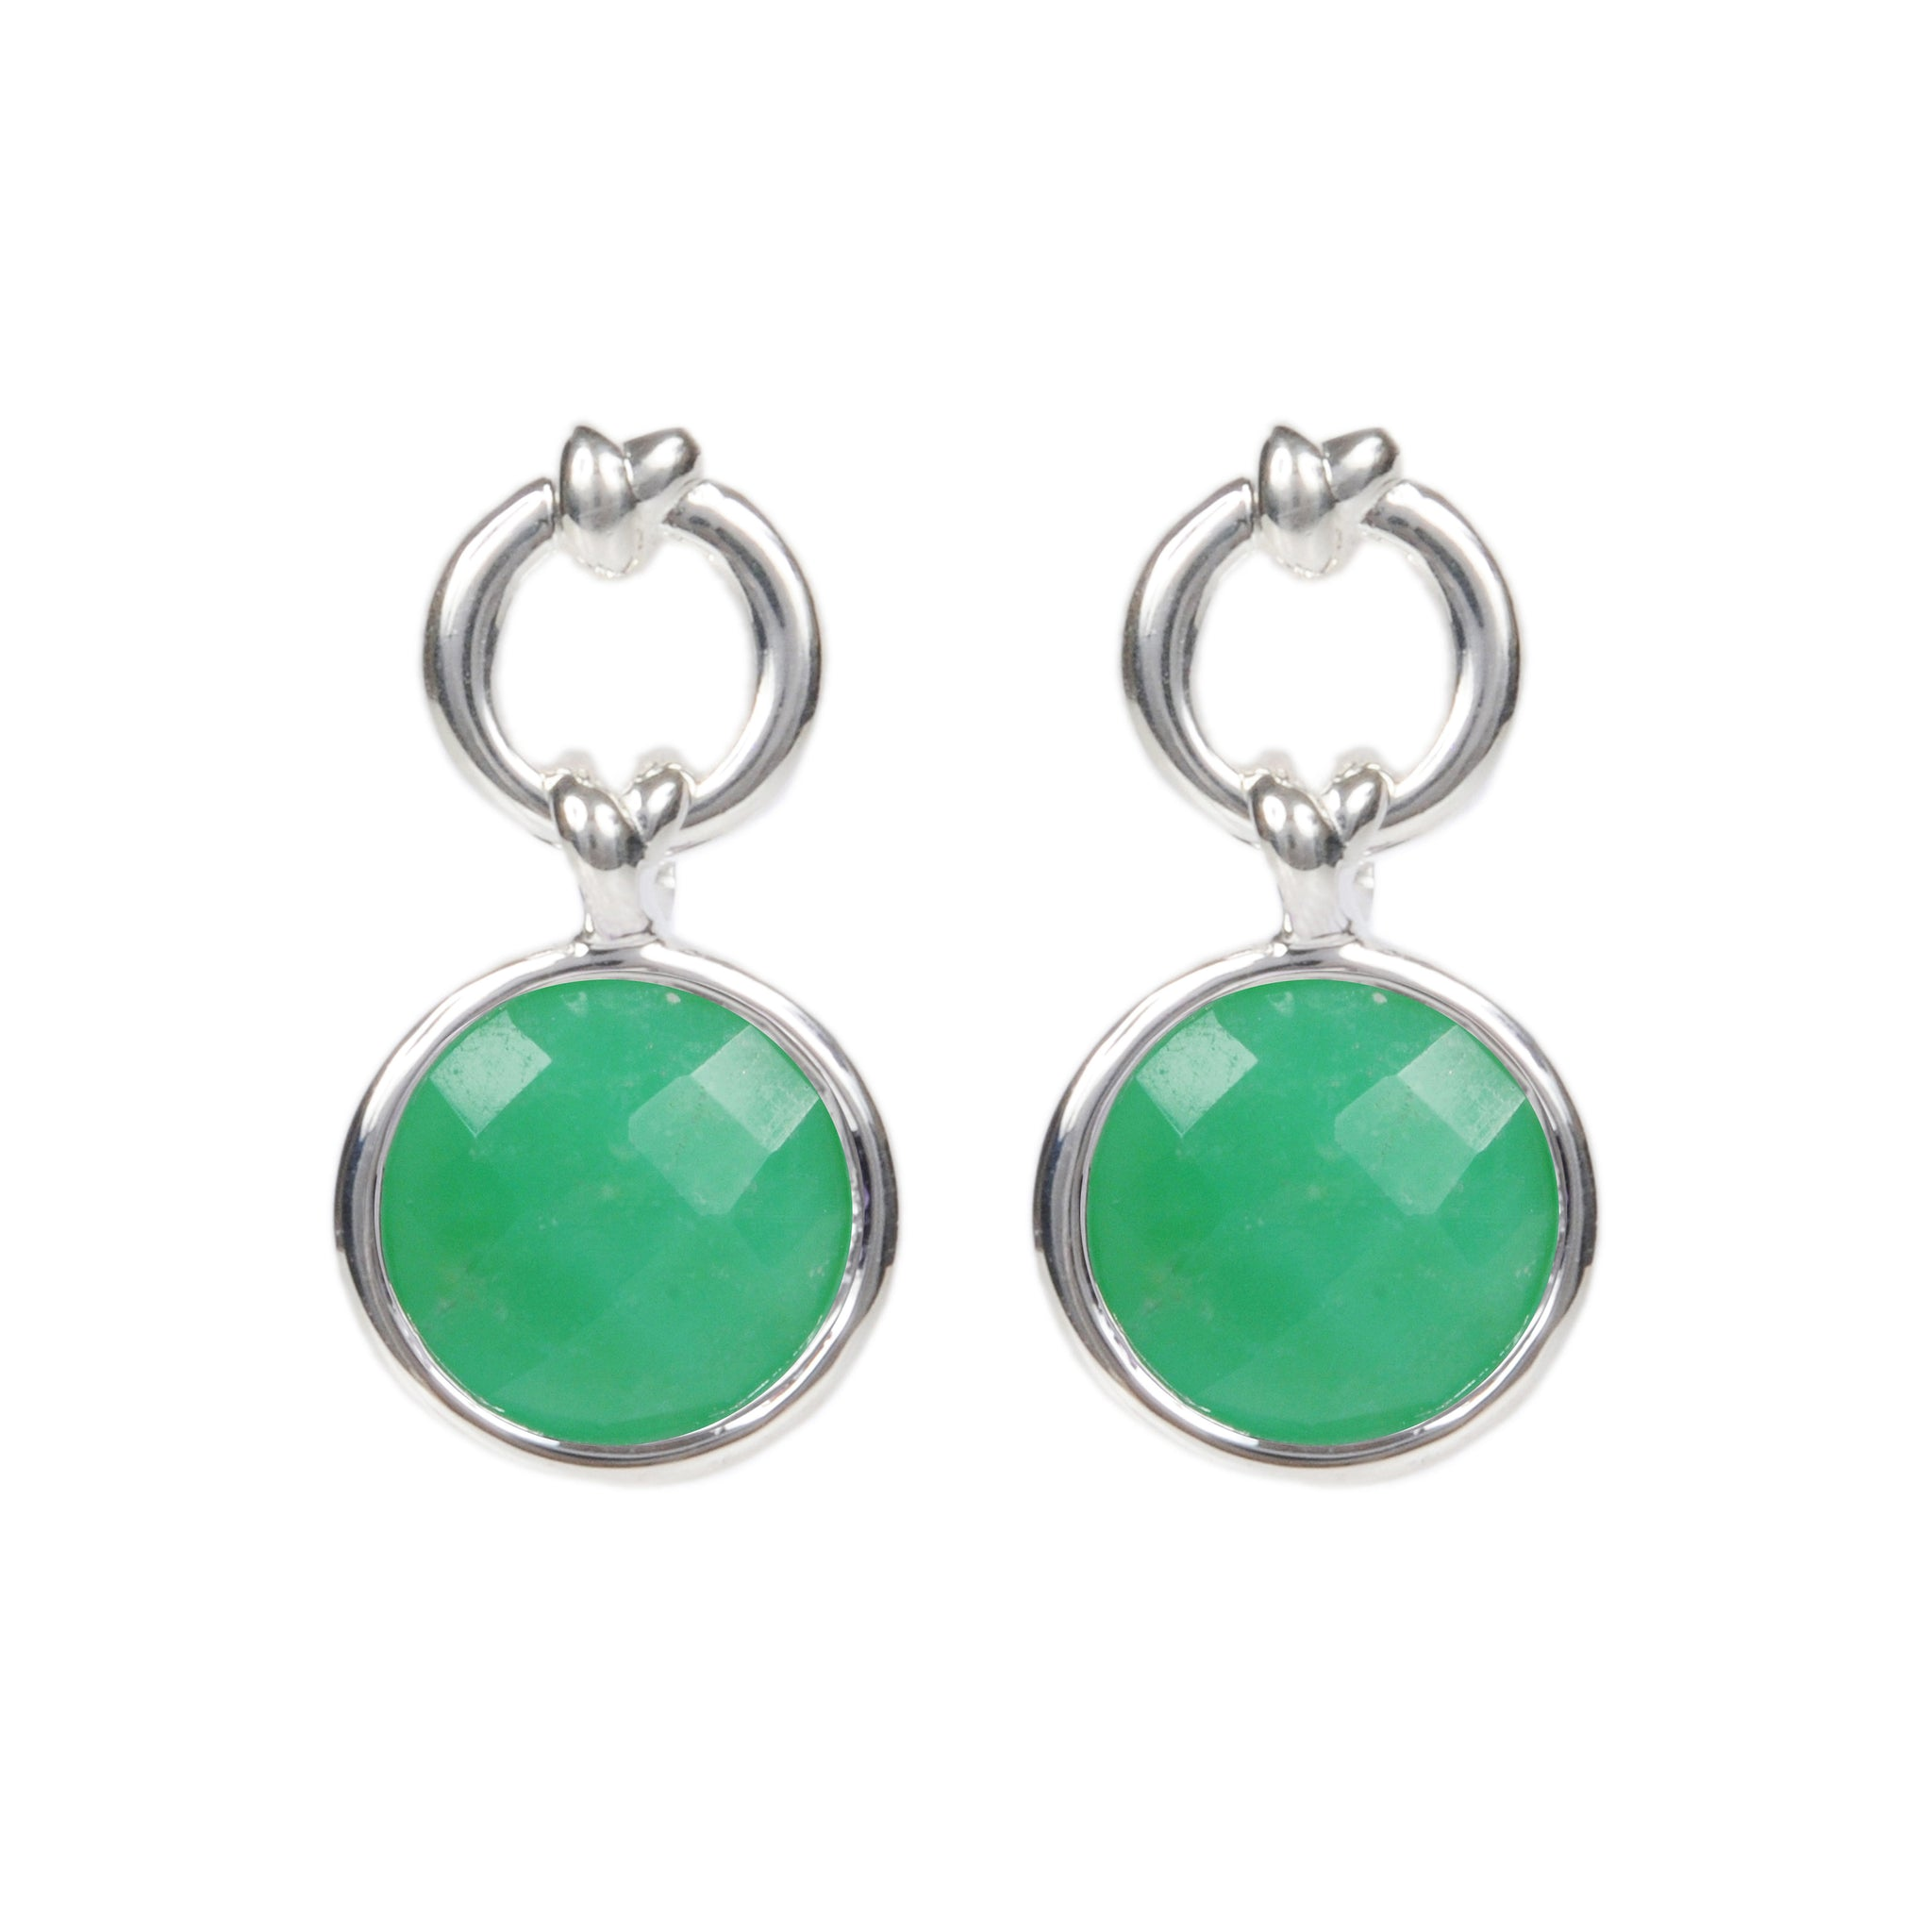 DAVINA COMBE - KNOT DROP EARRINGS WITH CHRYSOPRASE